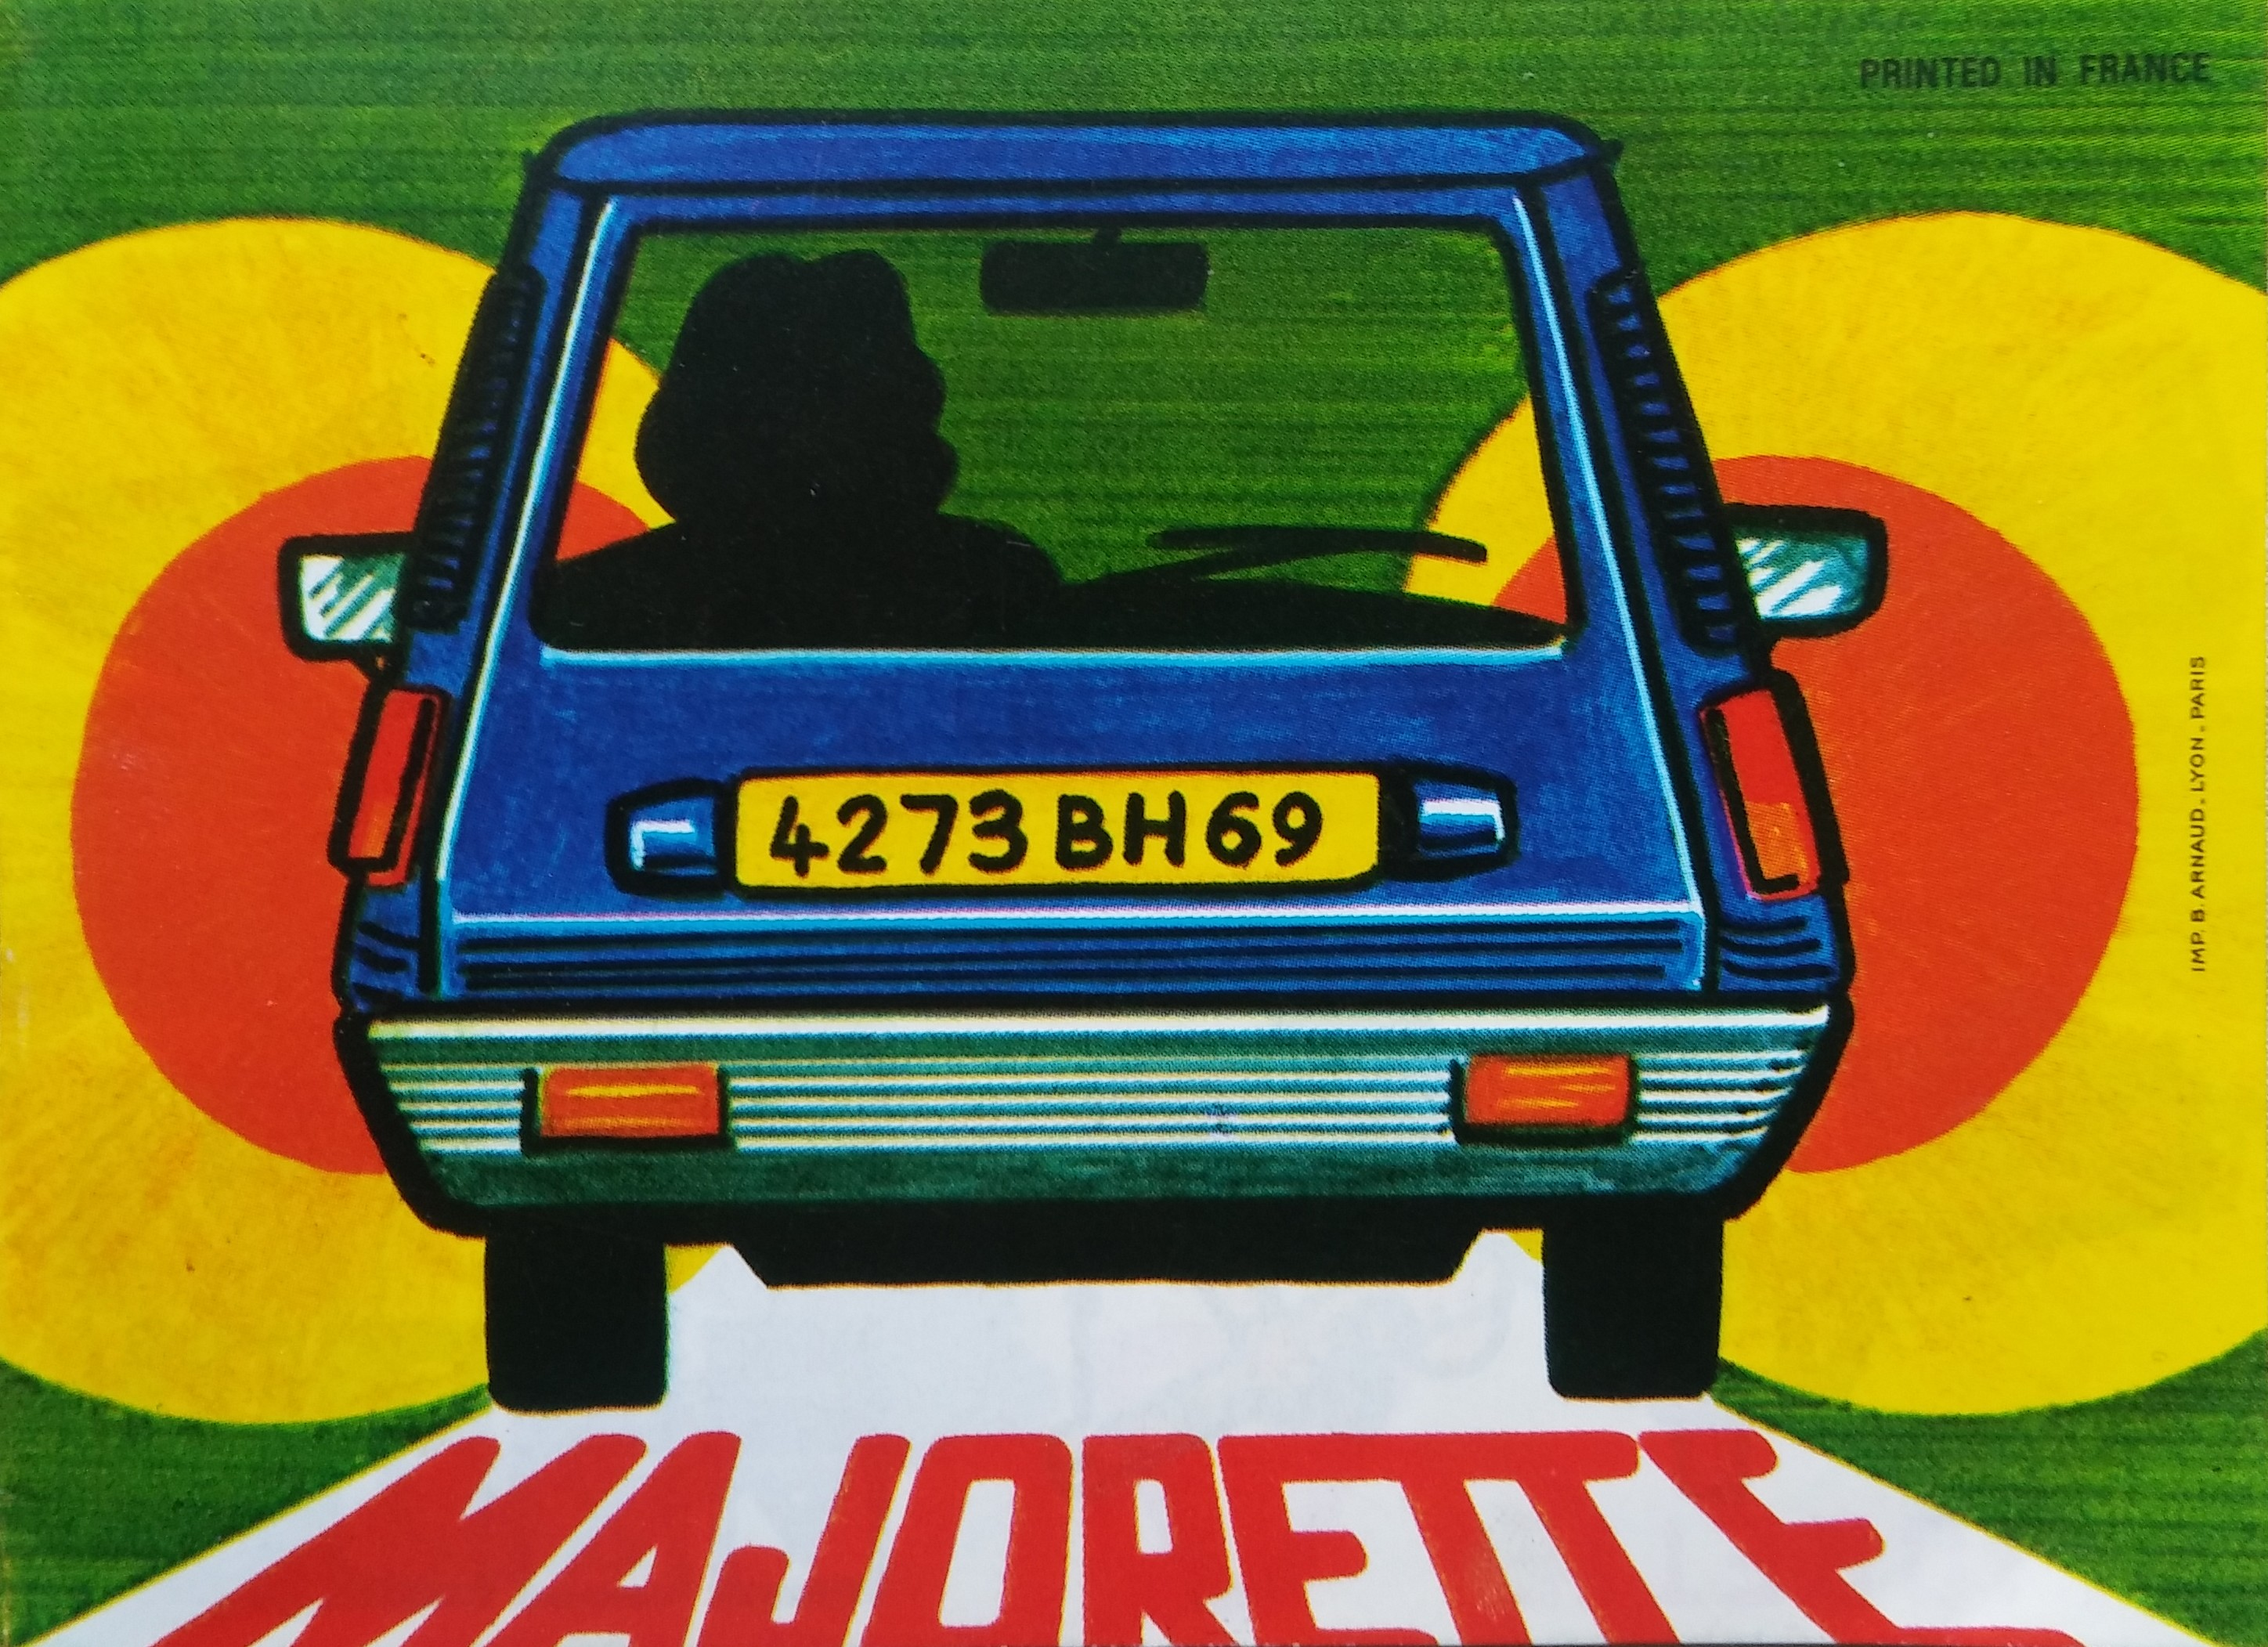 majorette_catalogue_1973_19.jpg